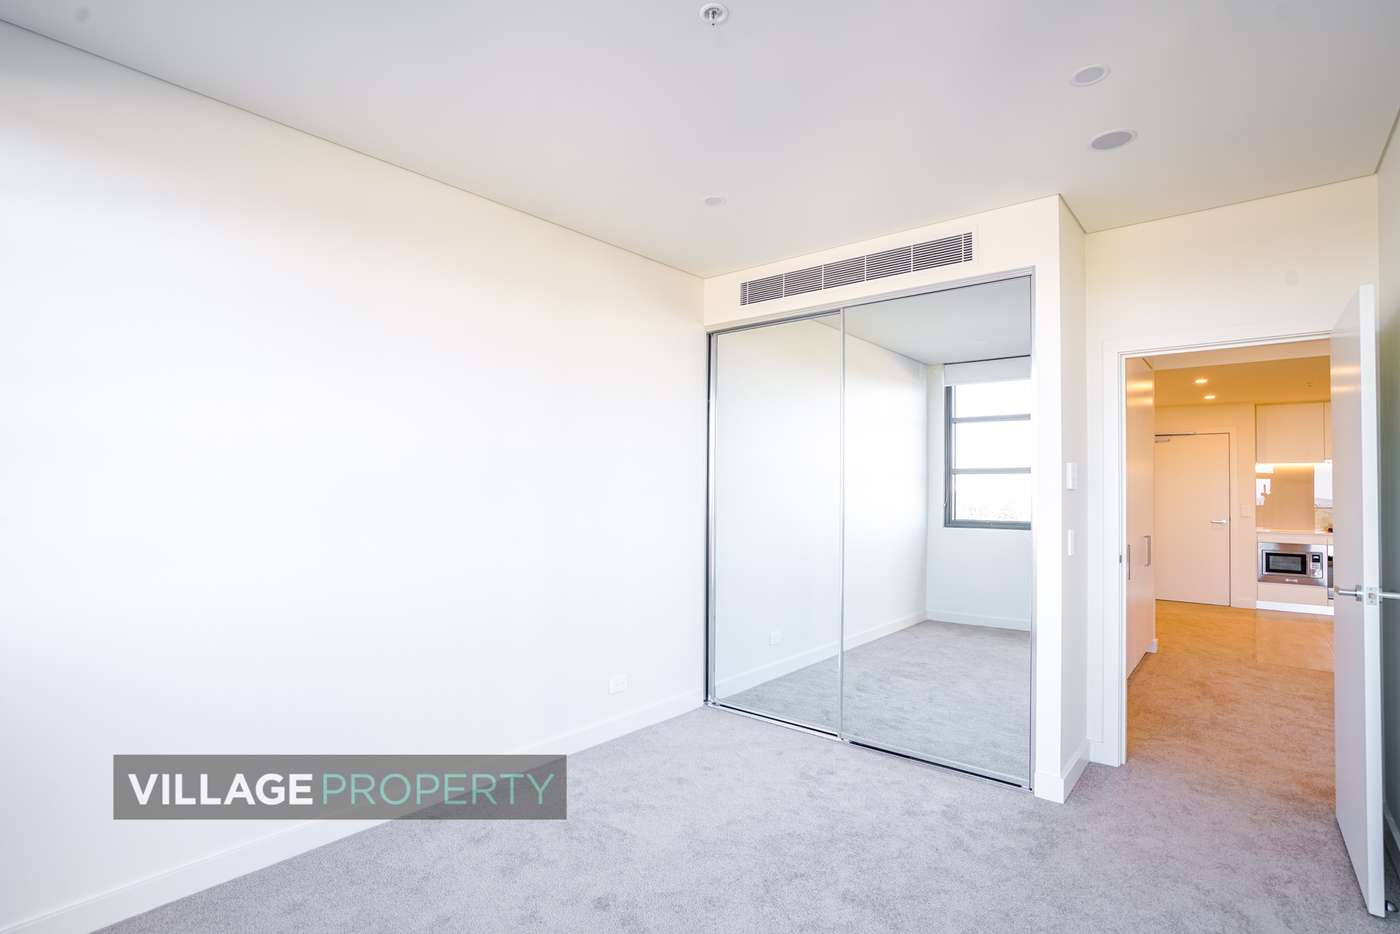 Sixth view of Homely apartment listing, 189/213 Princes Highway, Arncliffe NSW 2205